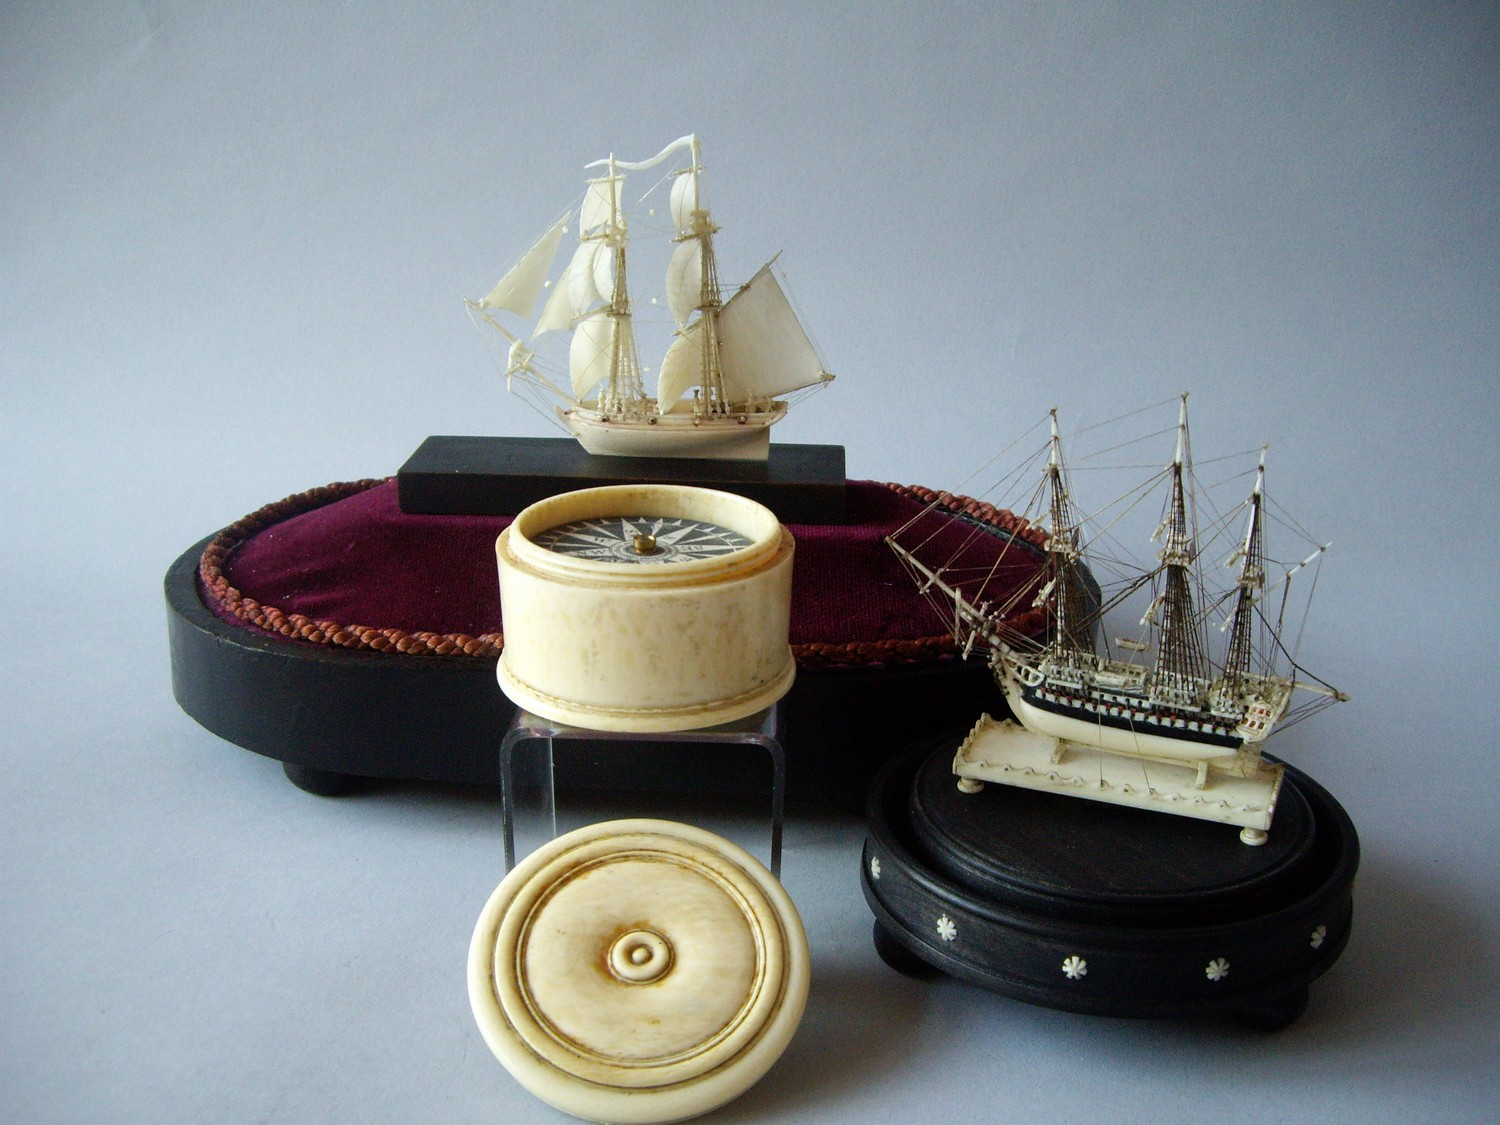 IVORY COMPASS – MADE BY GILBERT